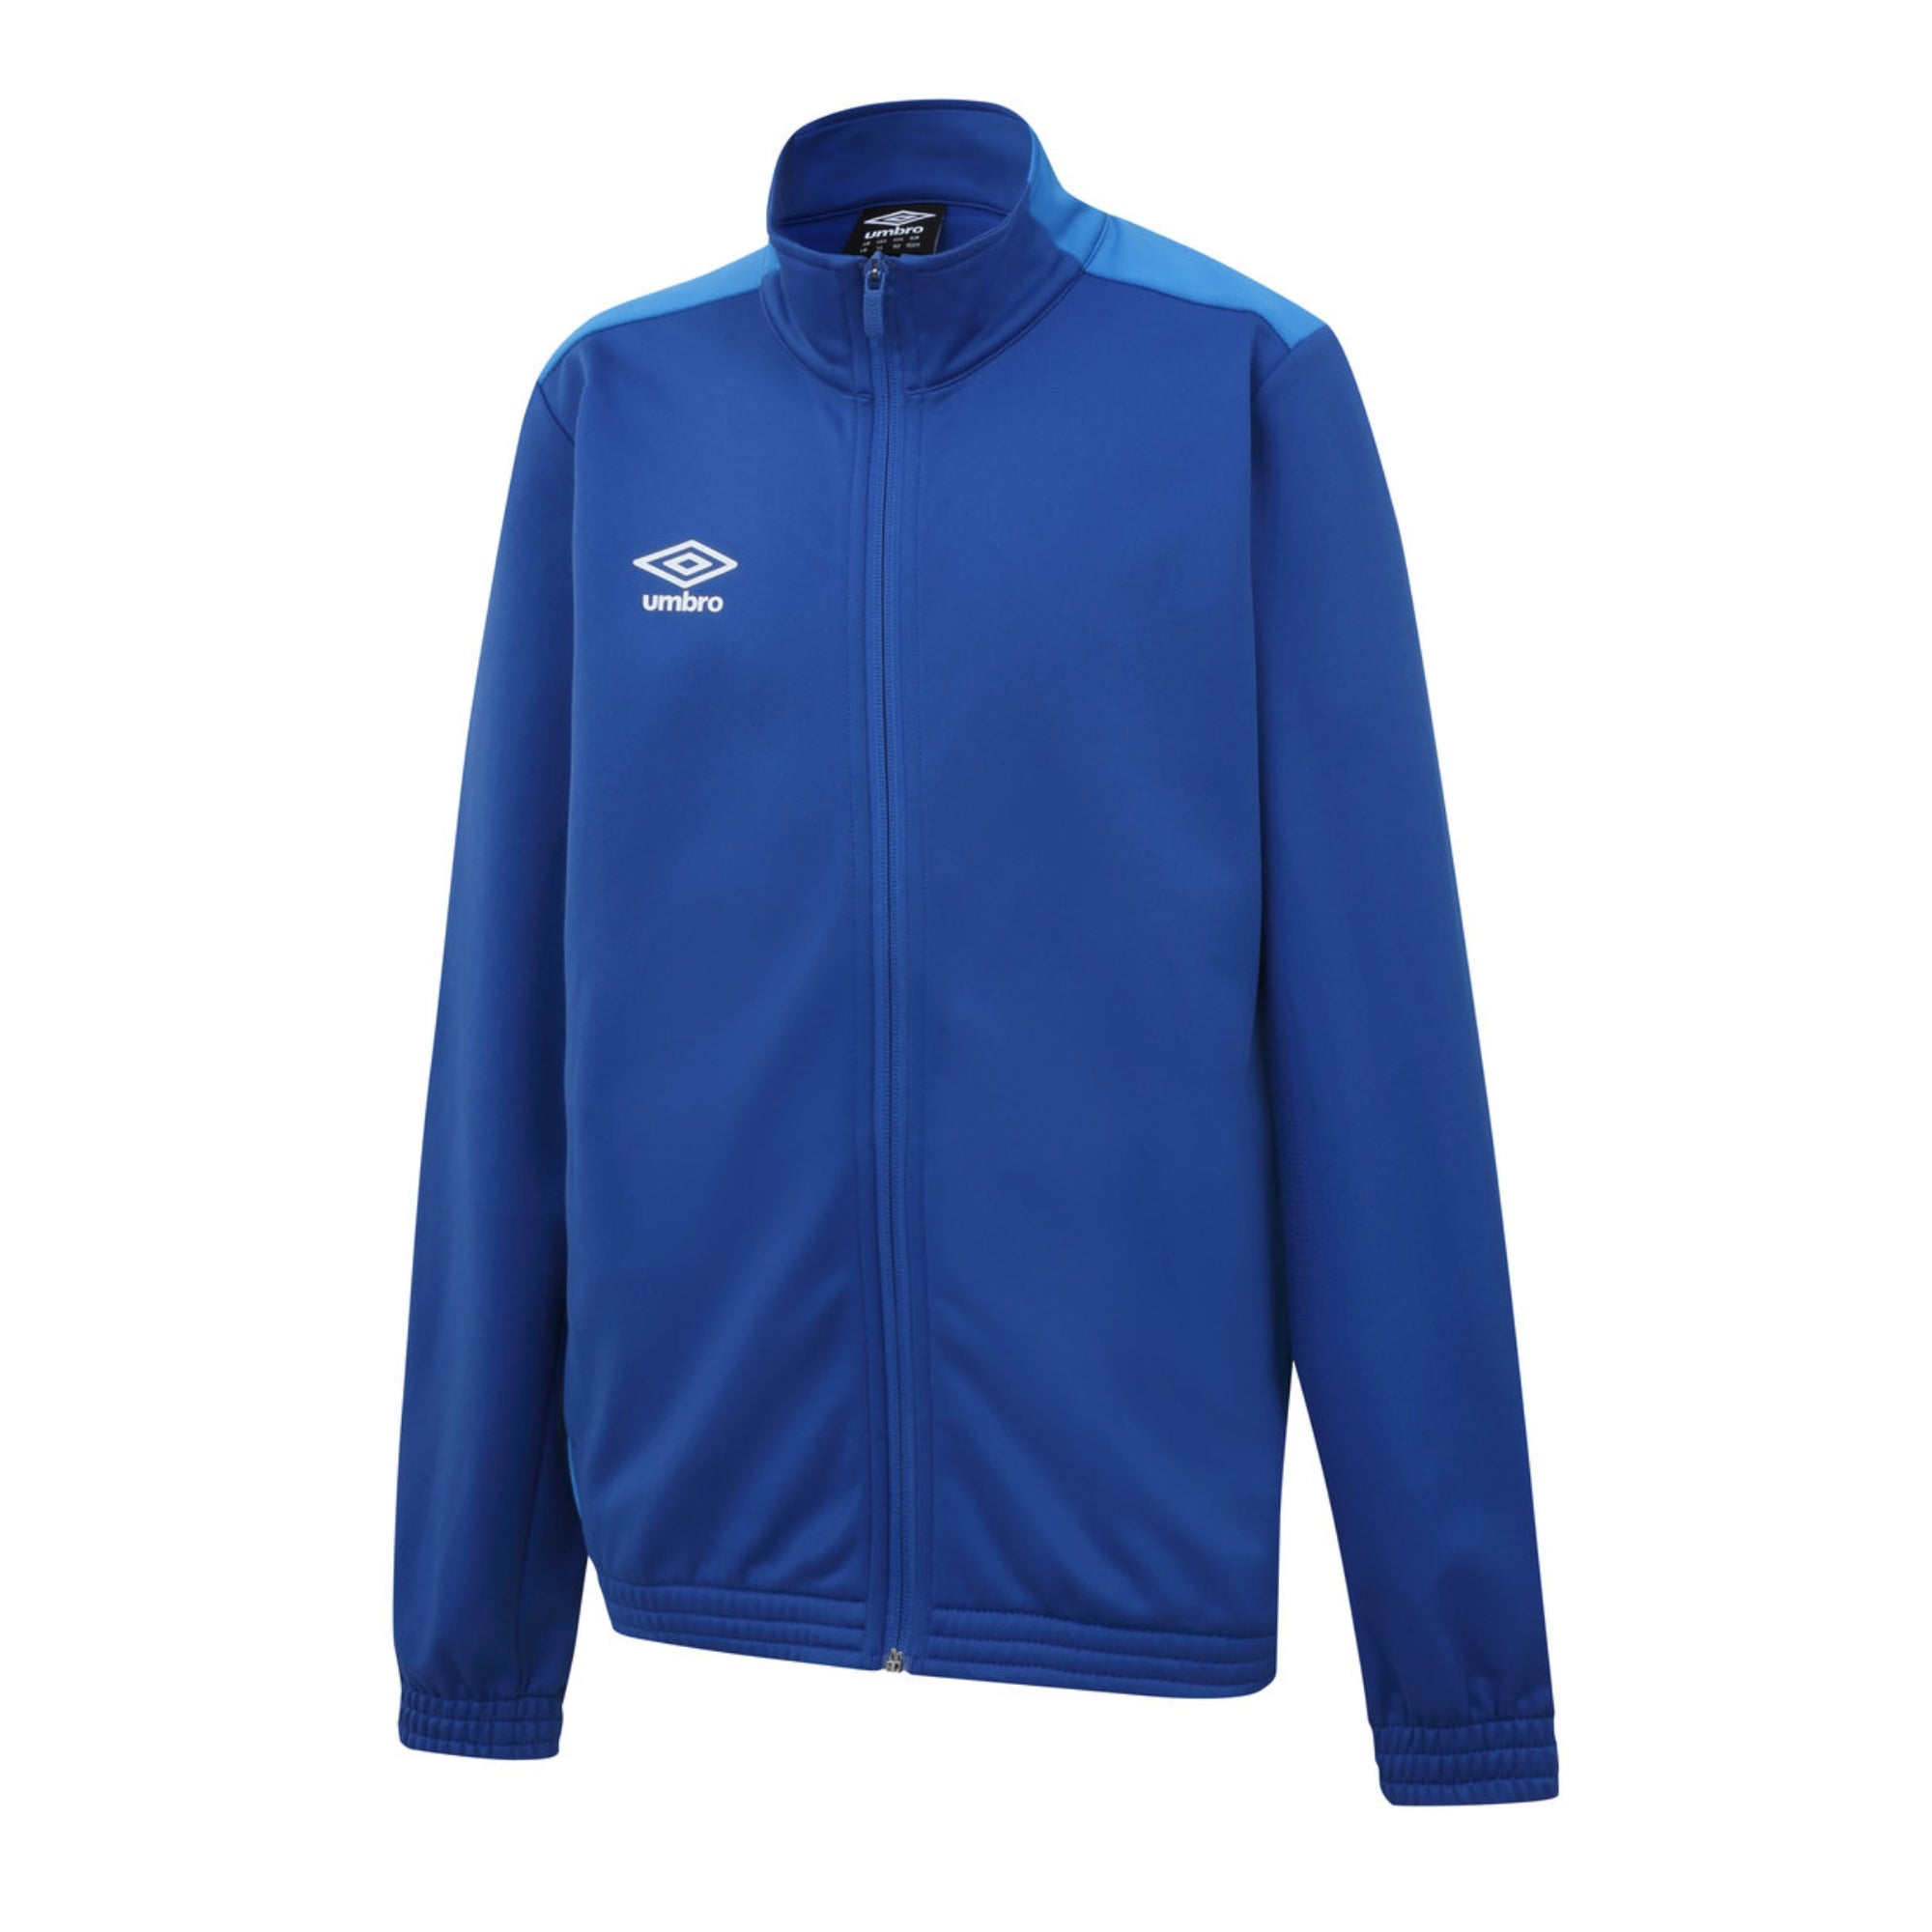 Umbro Training Knitted Jacket - Royal/French Blue